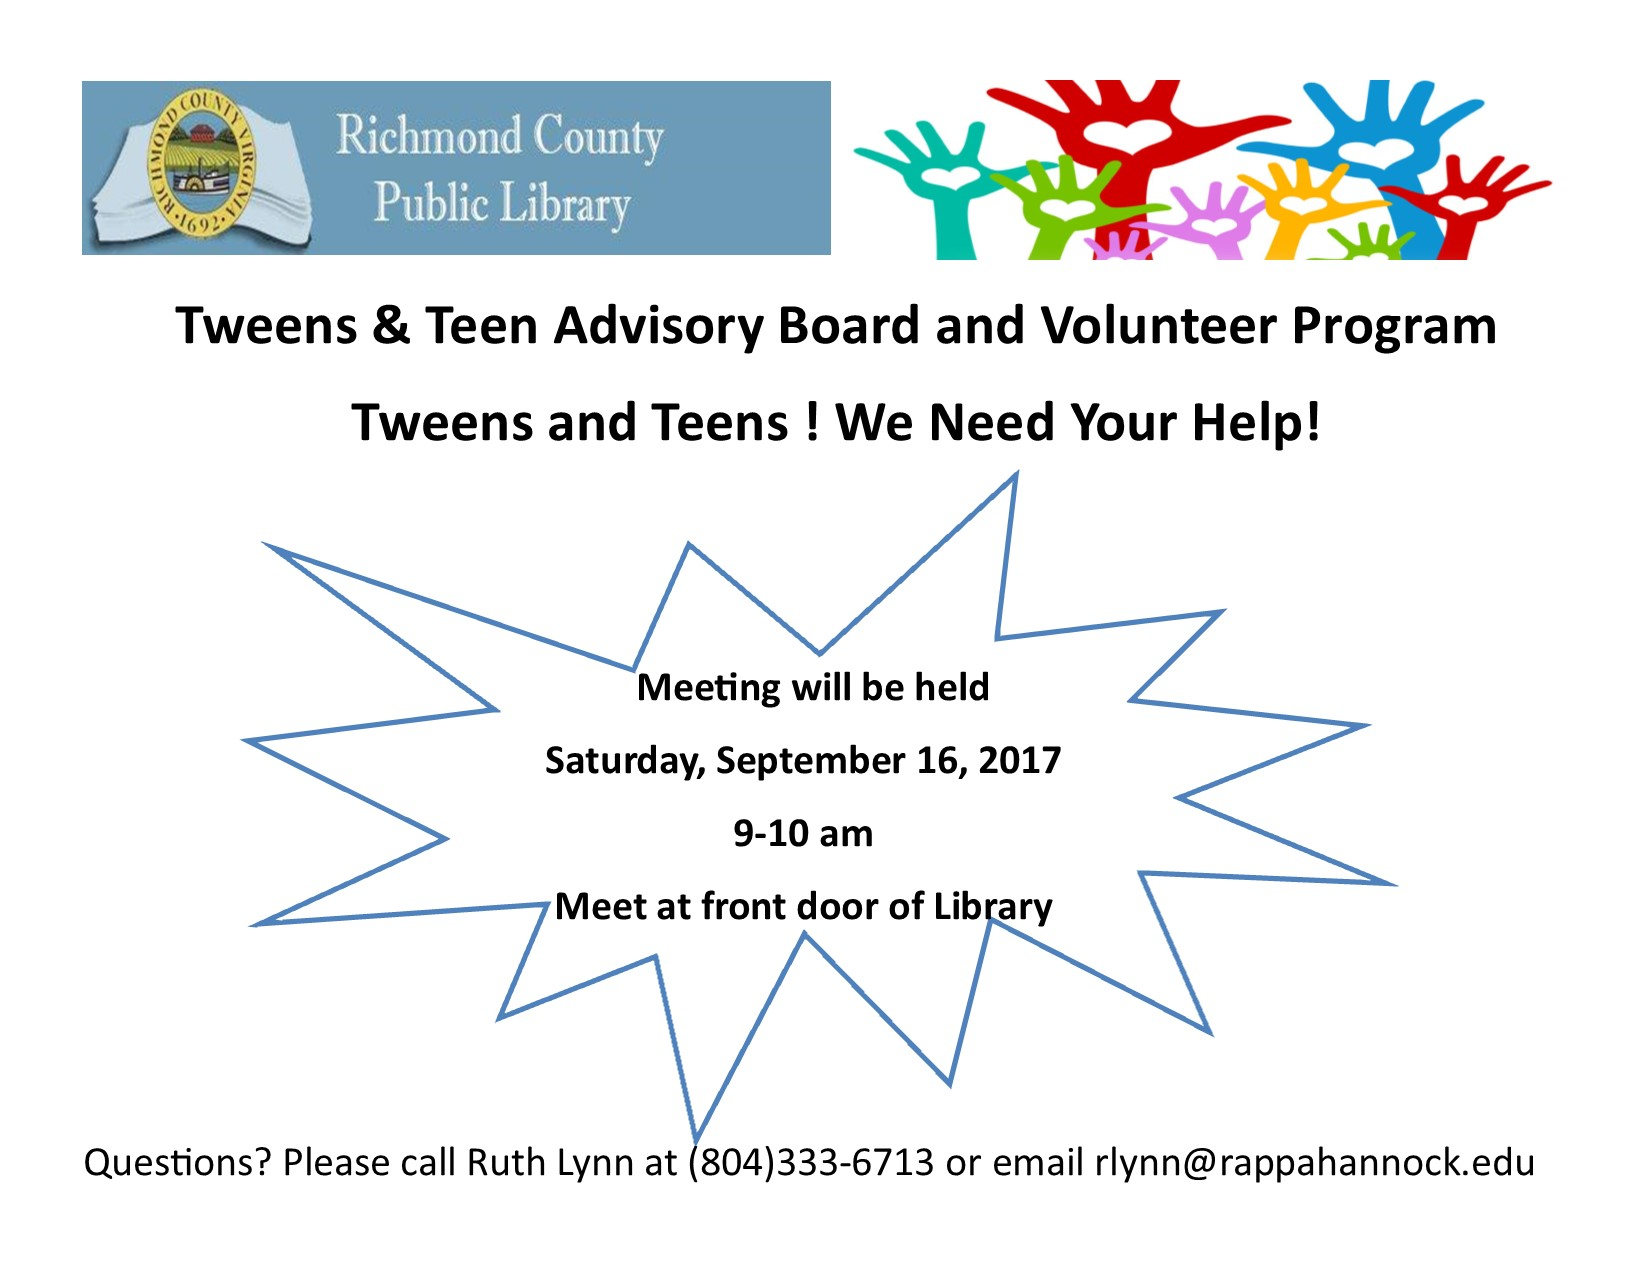 Tweens & Teen Advisory Board and Volunteer Program Meeting @ Richmond County Public Library